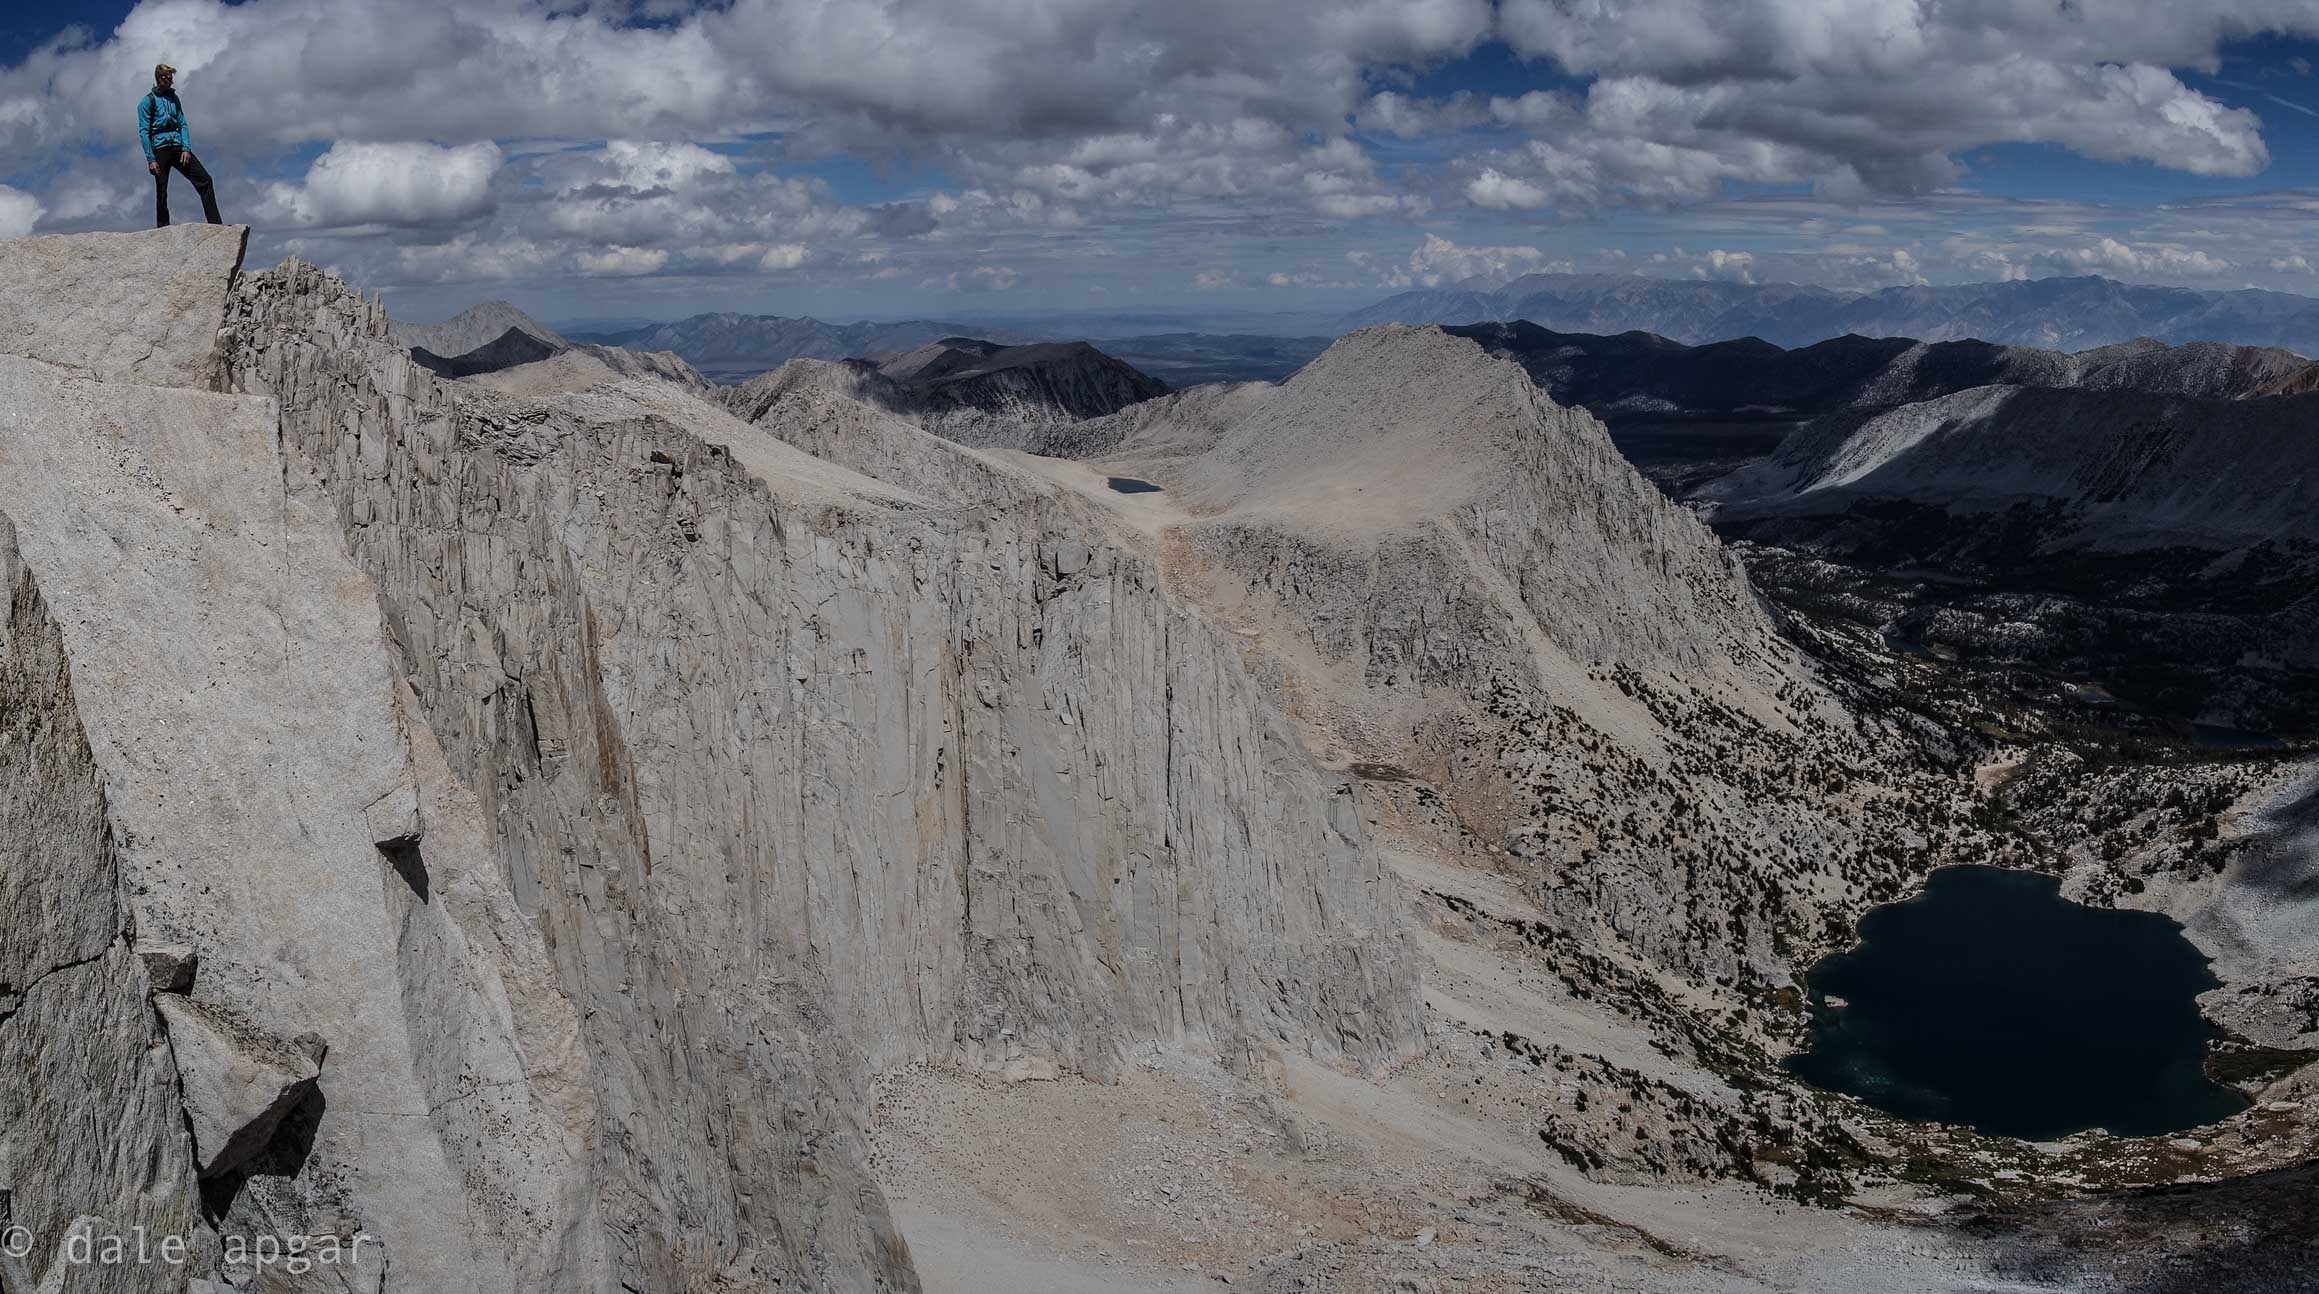 Atop the Ruby Wall in the Eastern Sierra